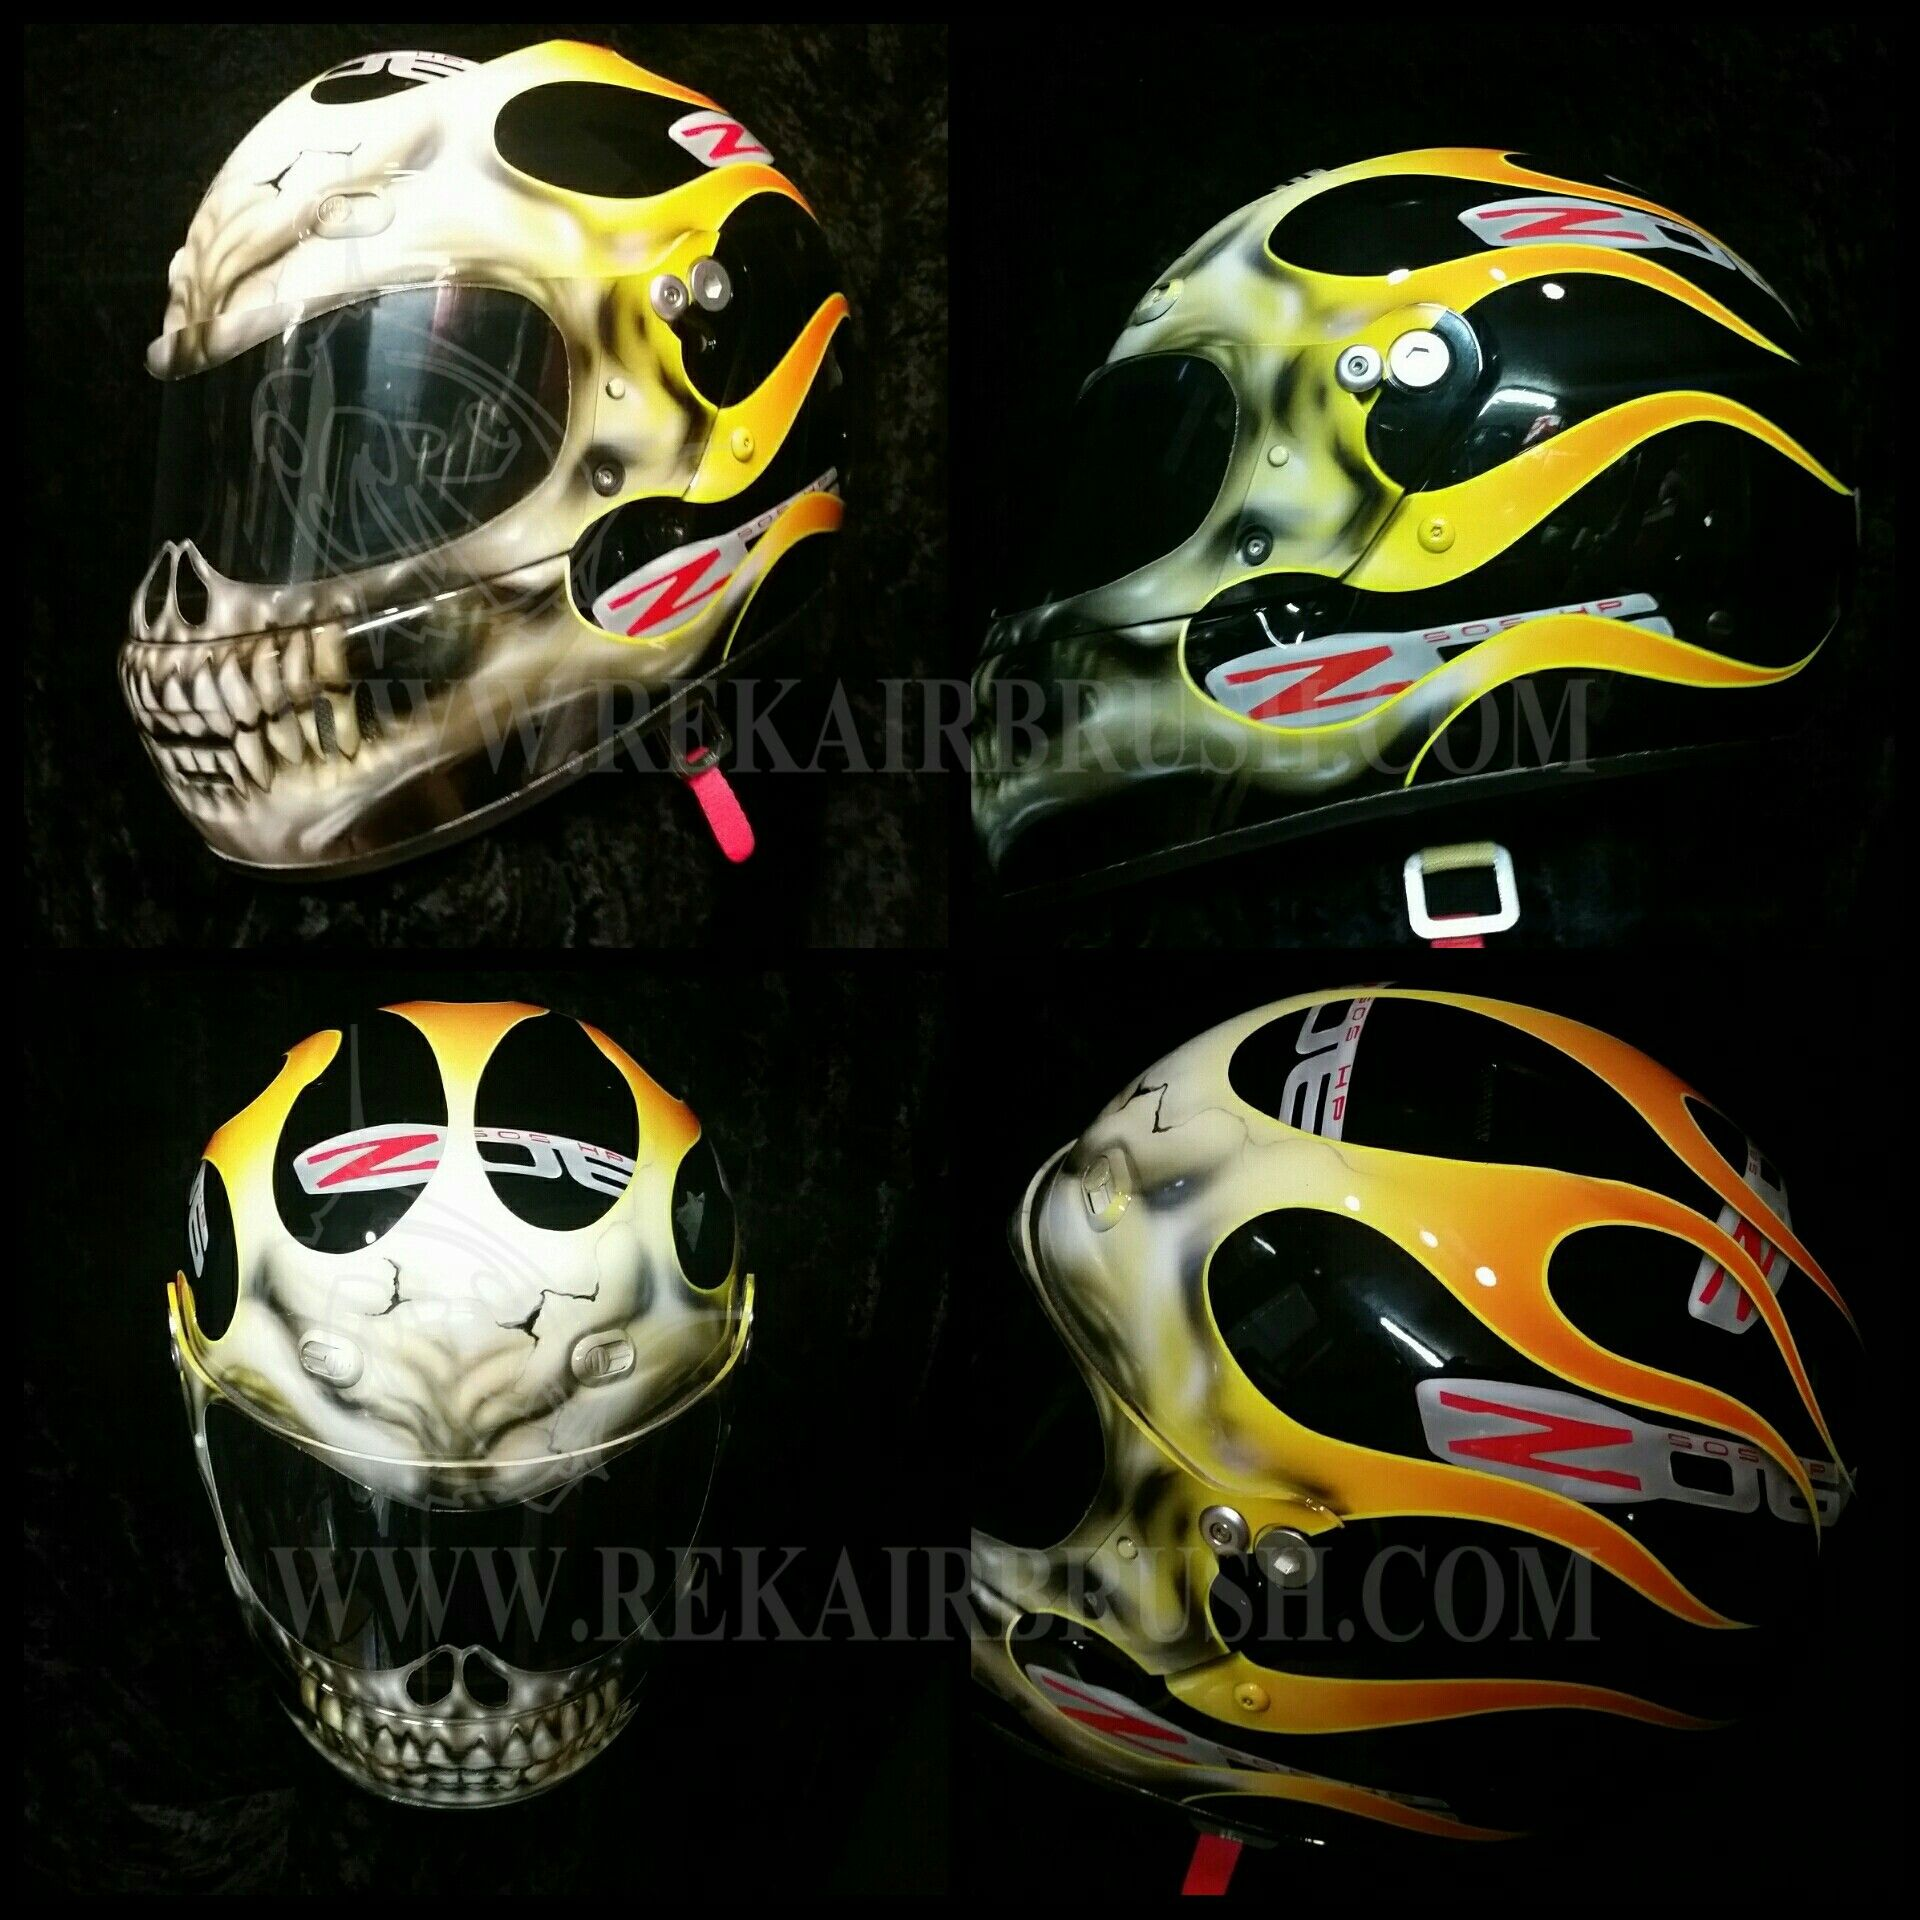 TRUE FIRE SKULL HOT ROD FLAMES ON SHOEI MOTORCYCLE HELMET by